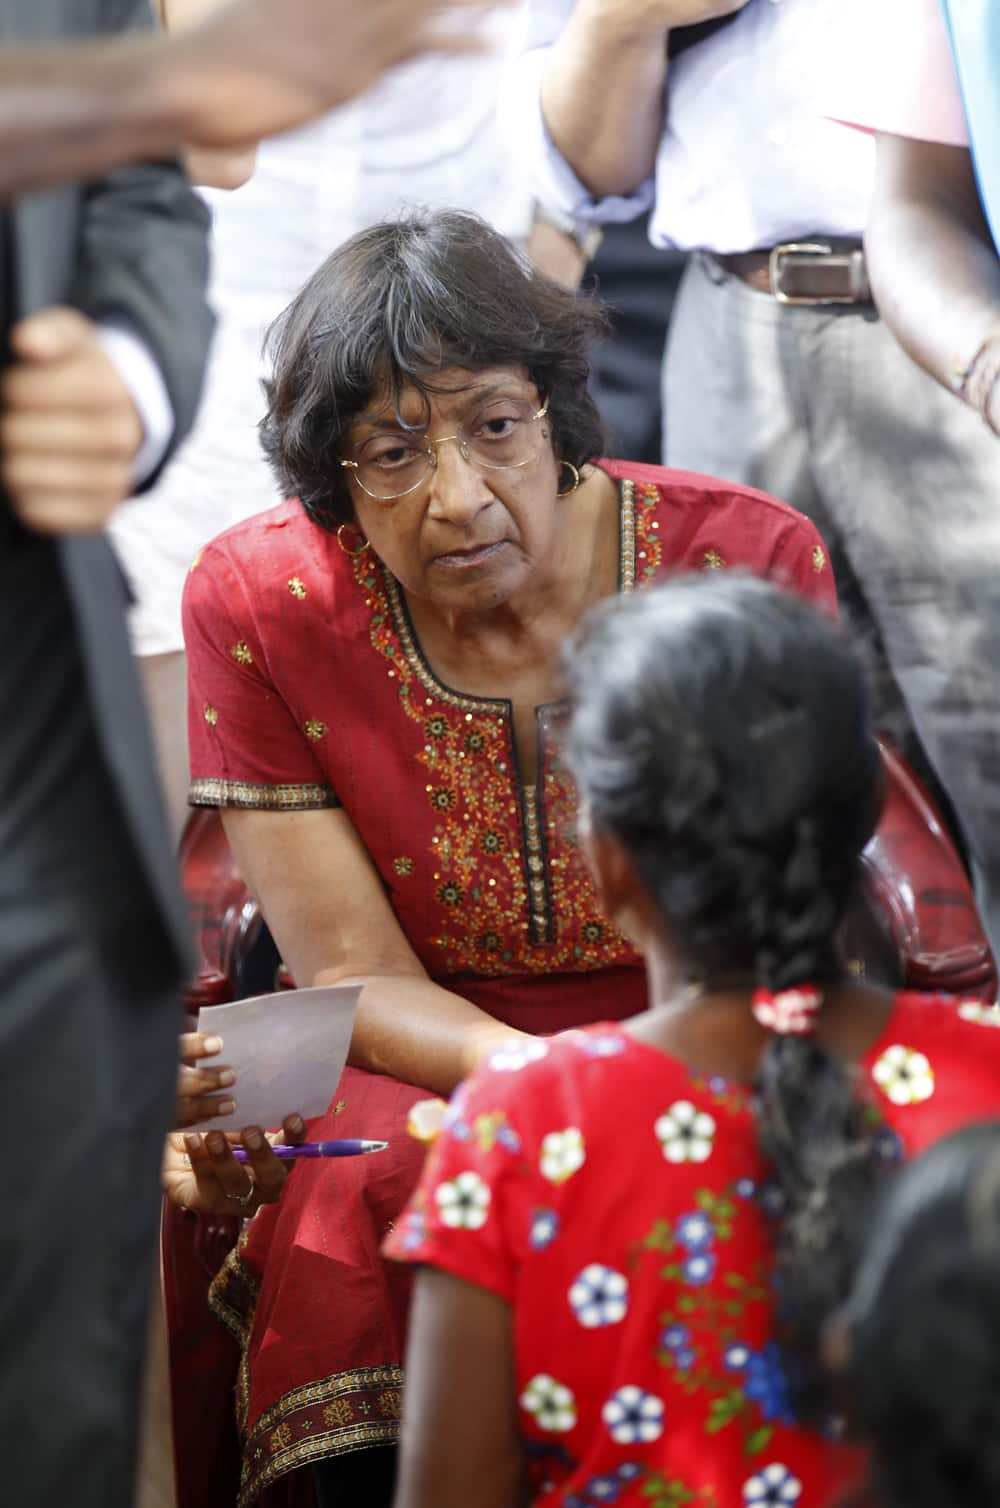 U.N. High Commissioner for Human Rights Navi Pillay listens to an ethnic Tamil war survivor during her visit to Mullivaikkal, Sri Lanka.